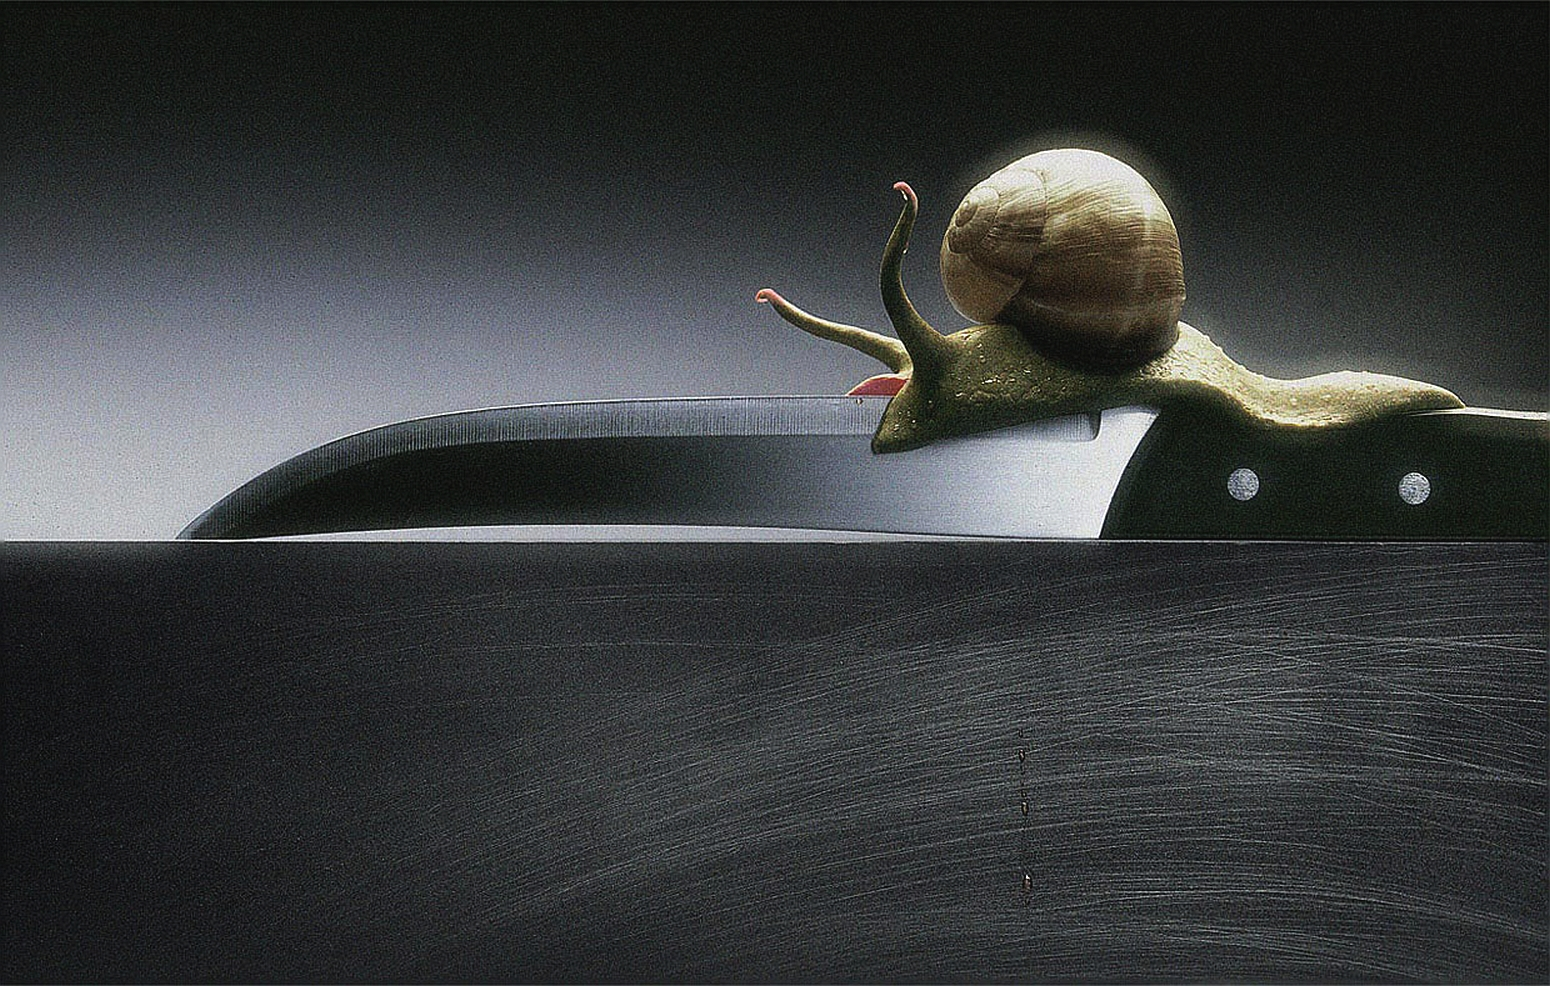 snail on the blade